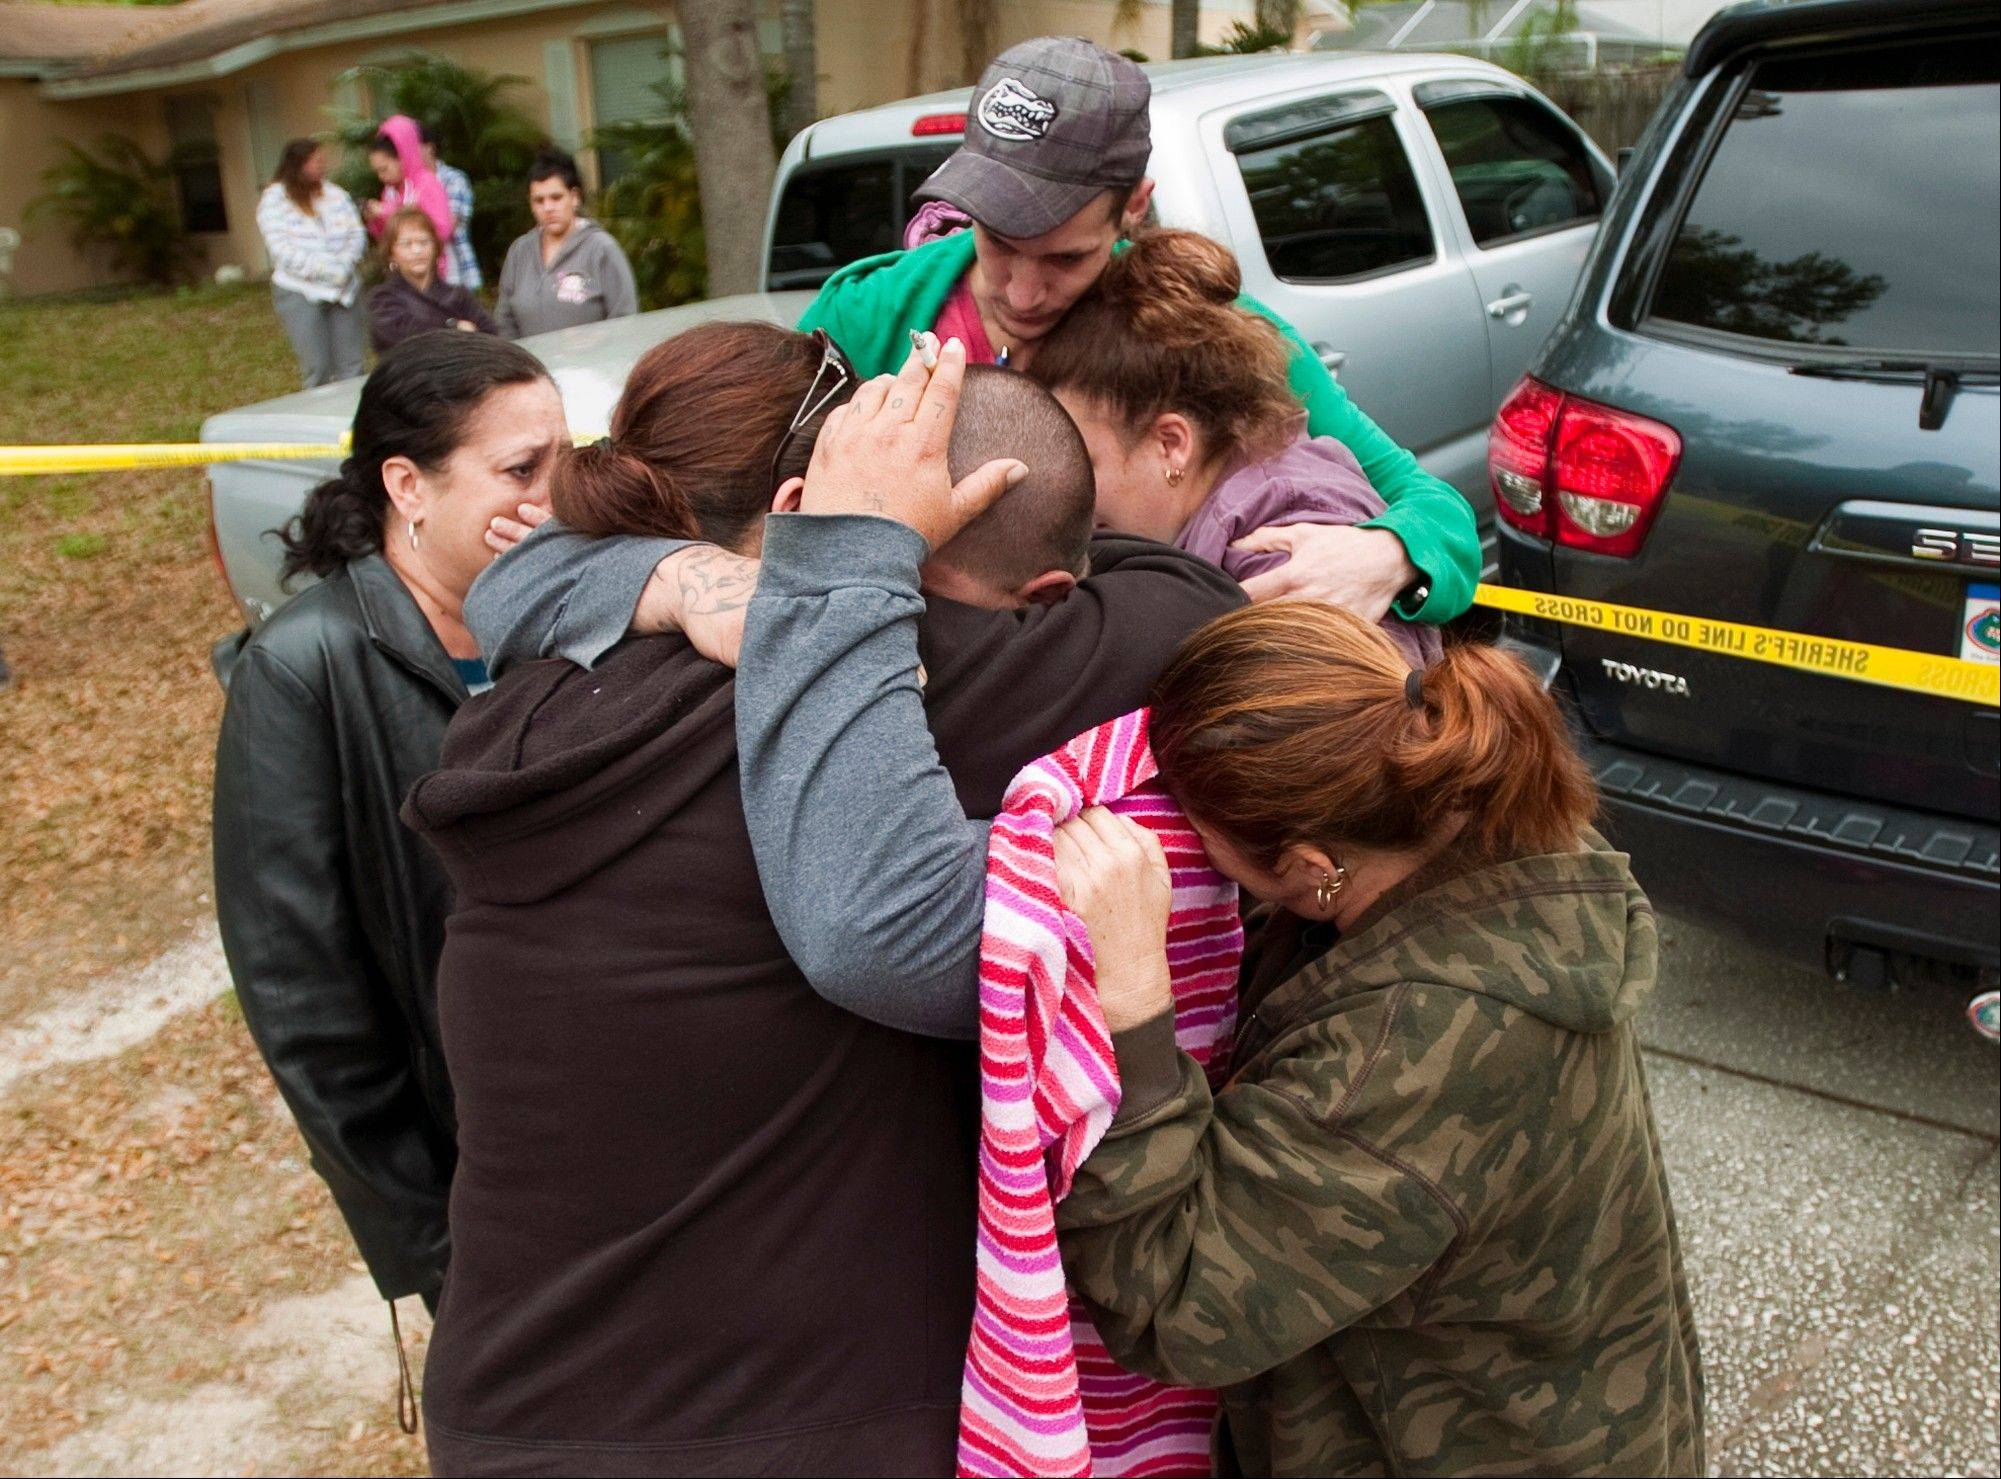 Jeremy Bush, center with hand on head, is embraced Friday by family and friends outside his home at 420 Faithway Drive in Seffner, Fla.